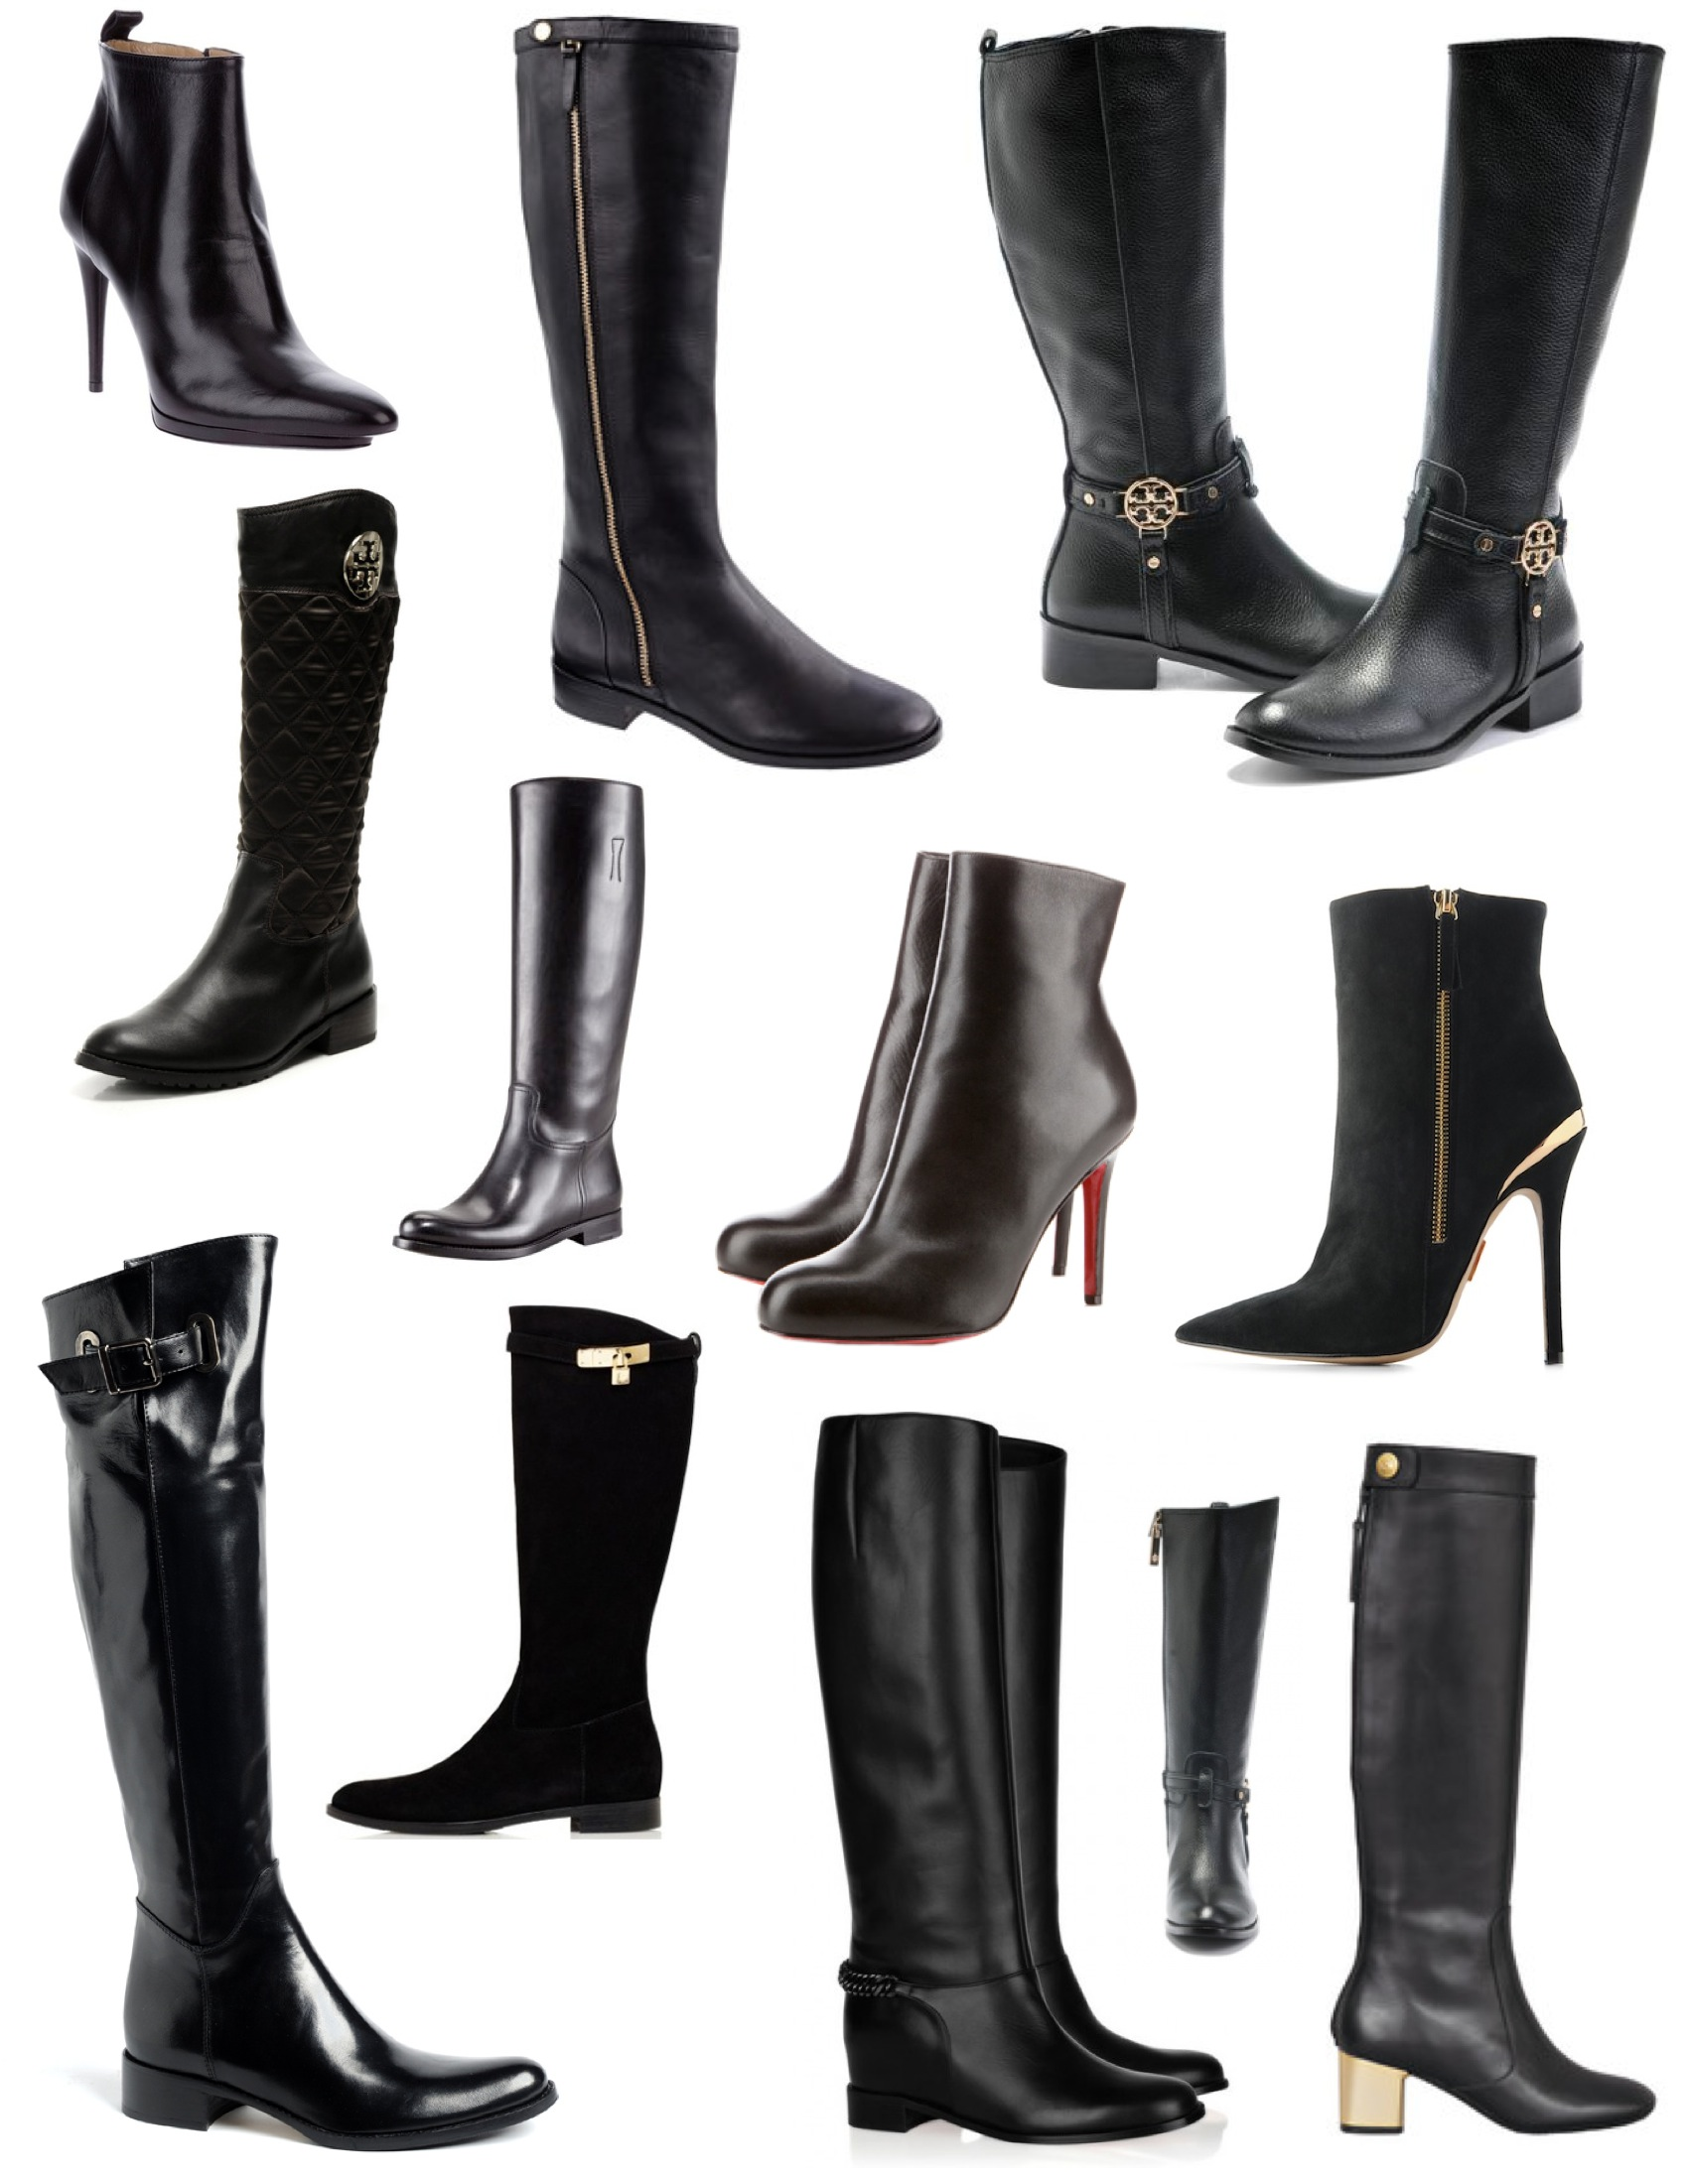 16a38f722e82d2 Stylish Function In Classic Black  The Powerful Leather Boot